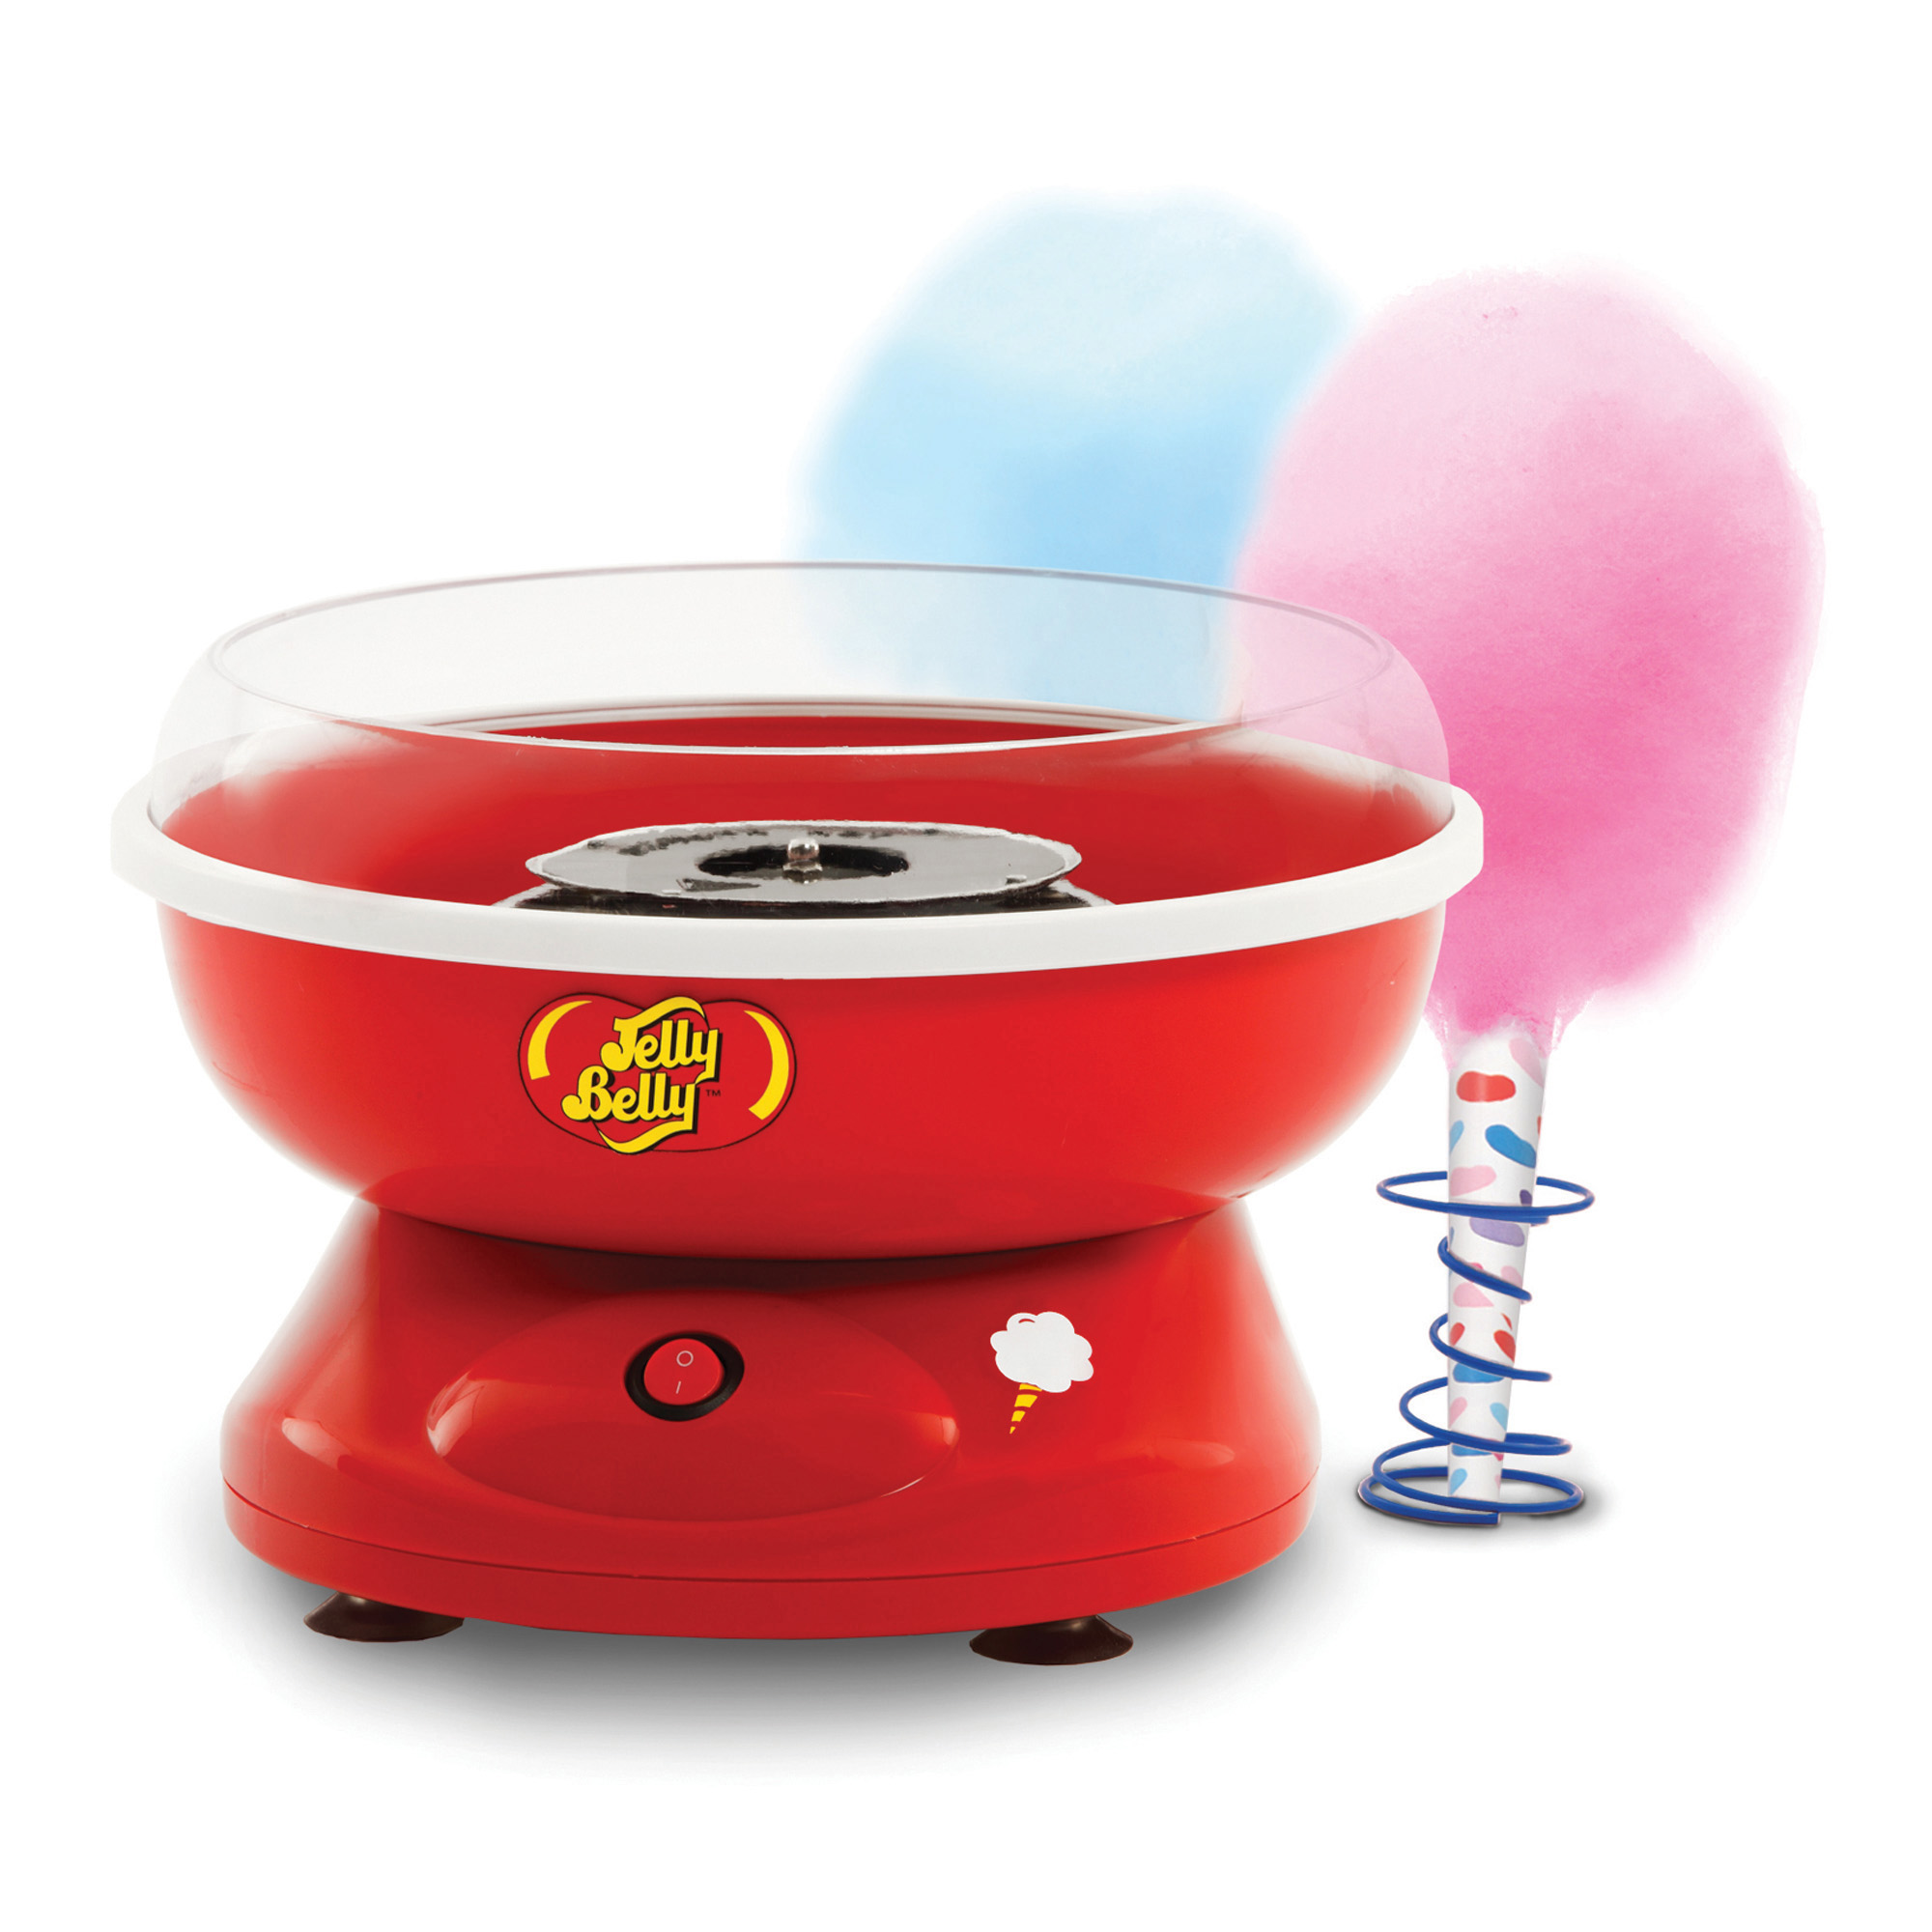 Jelly Belly JB15897 Cotton Candy Machine